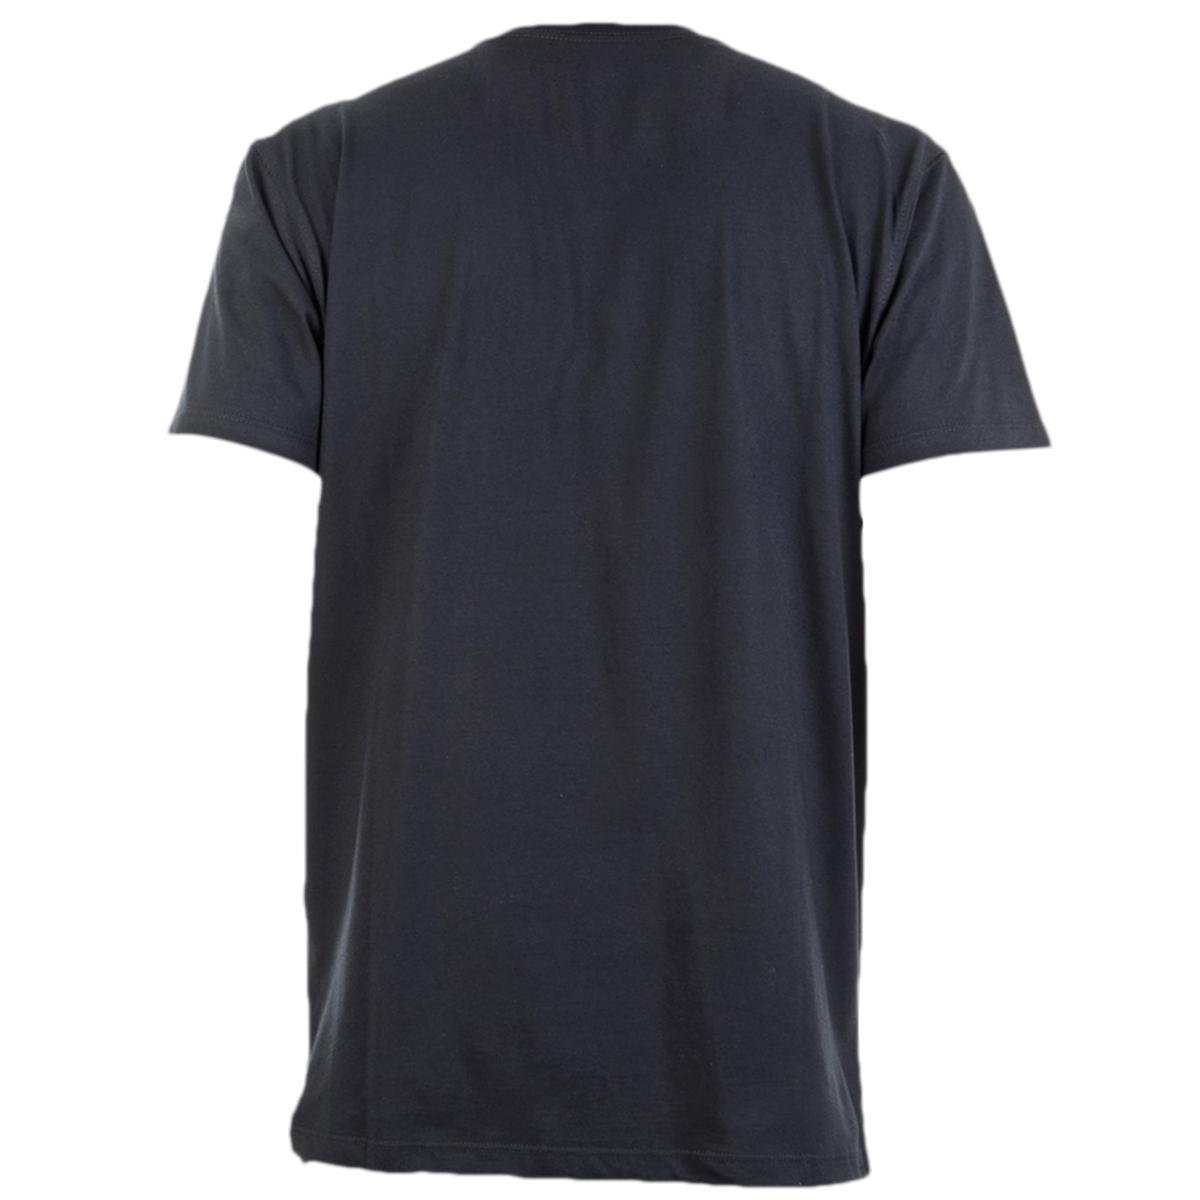 a3f212c51b3 Camiseta Oakley Too Many People Tee Masculino - Compre Agora